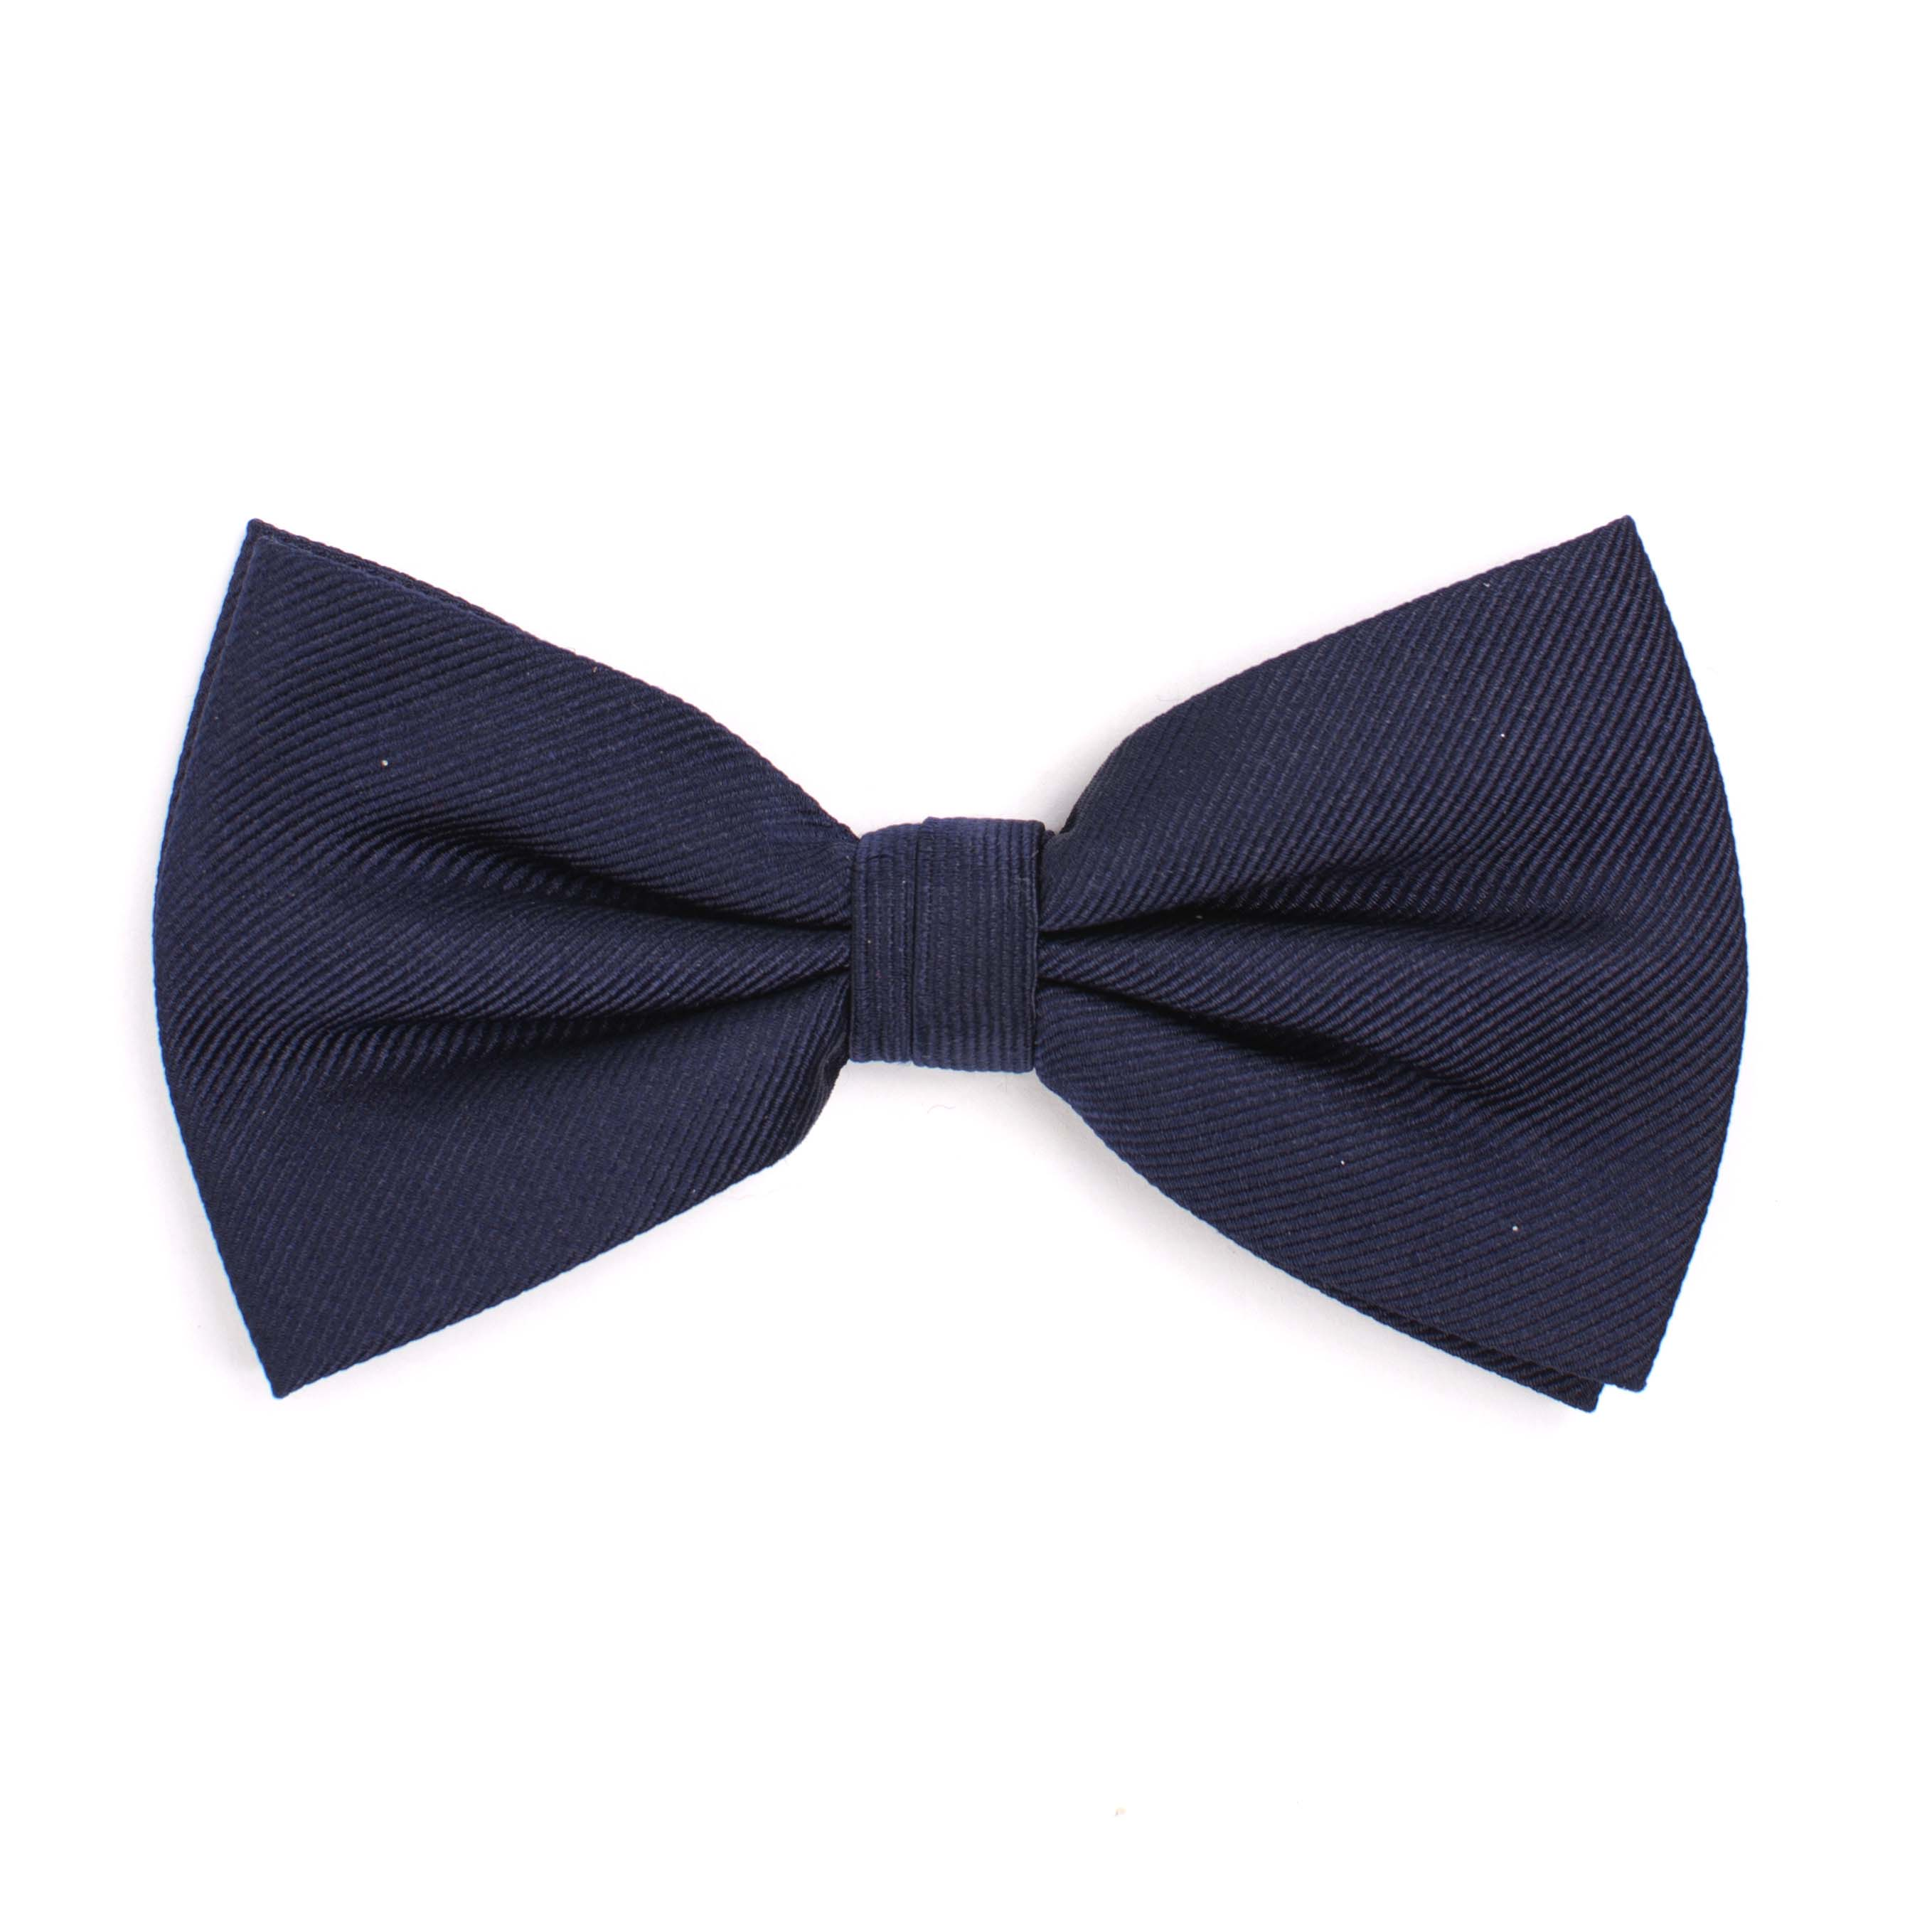 Bow tie classic ribbed navy